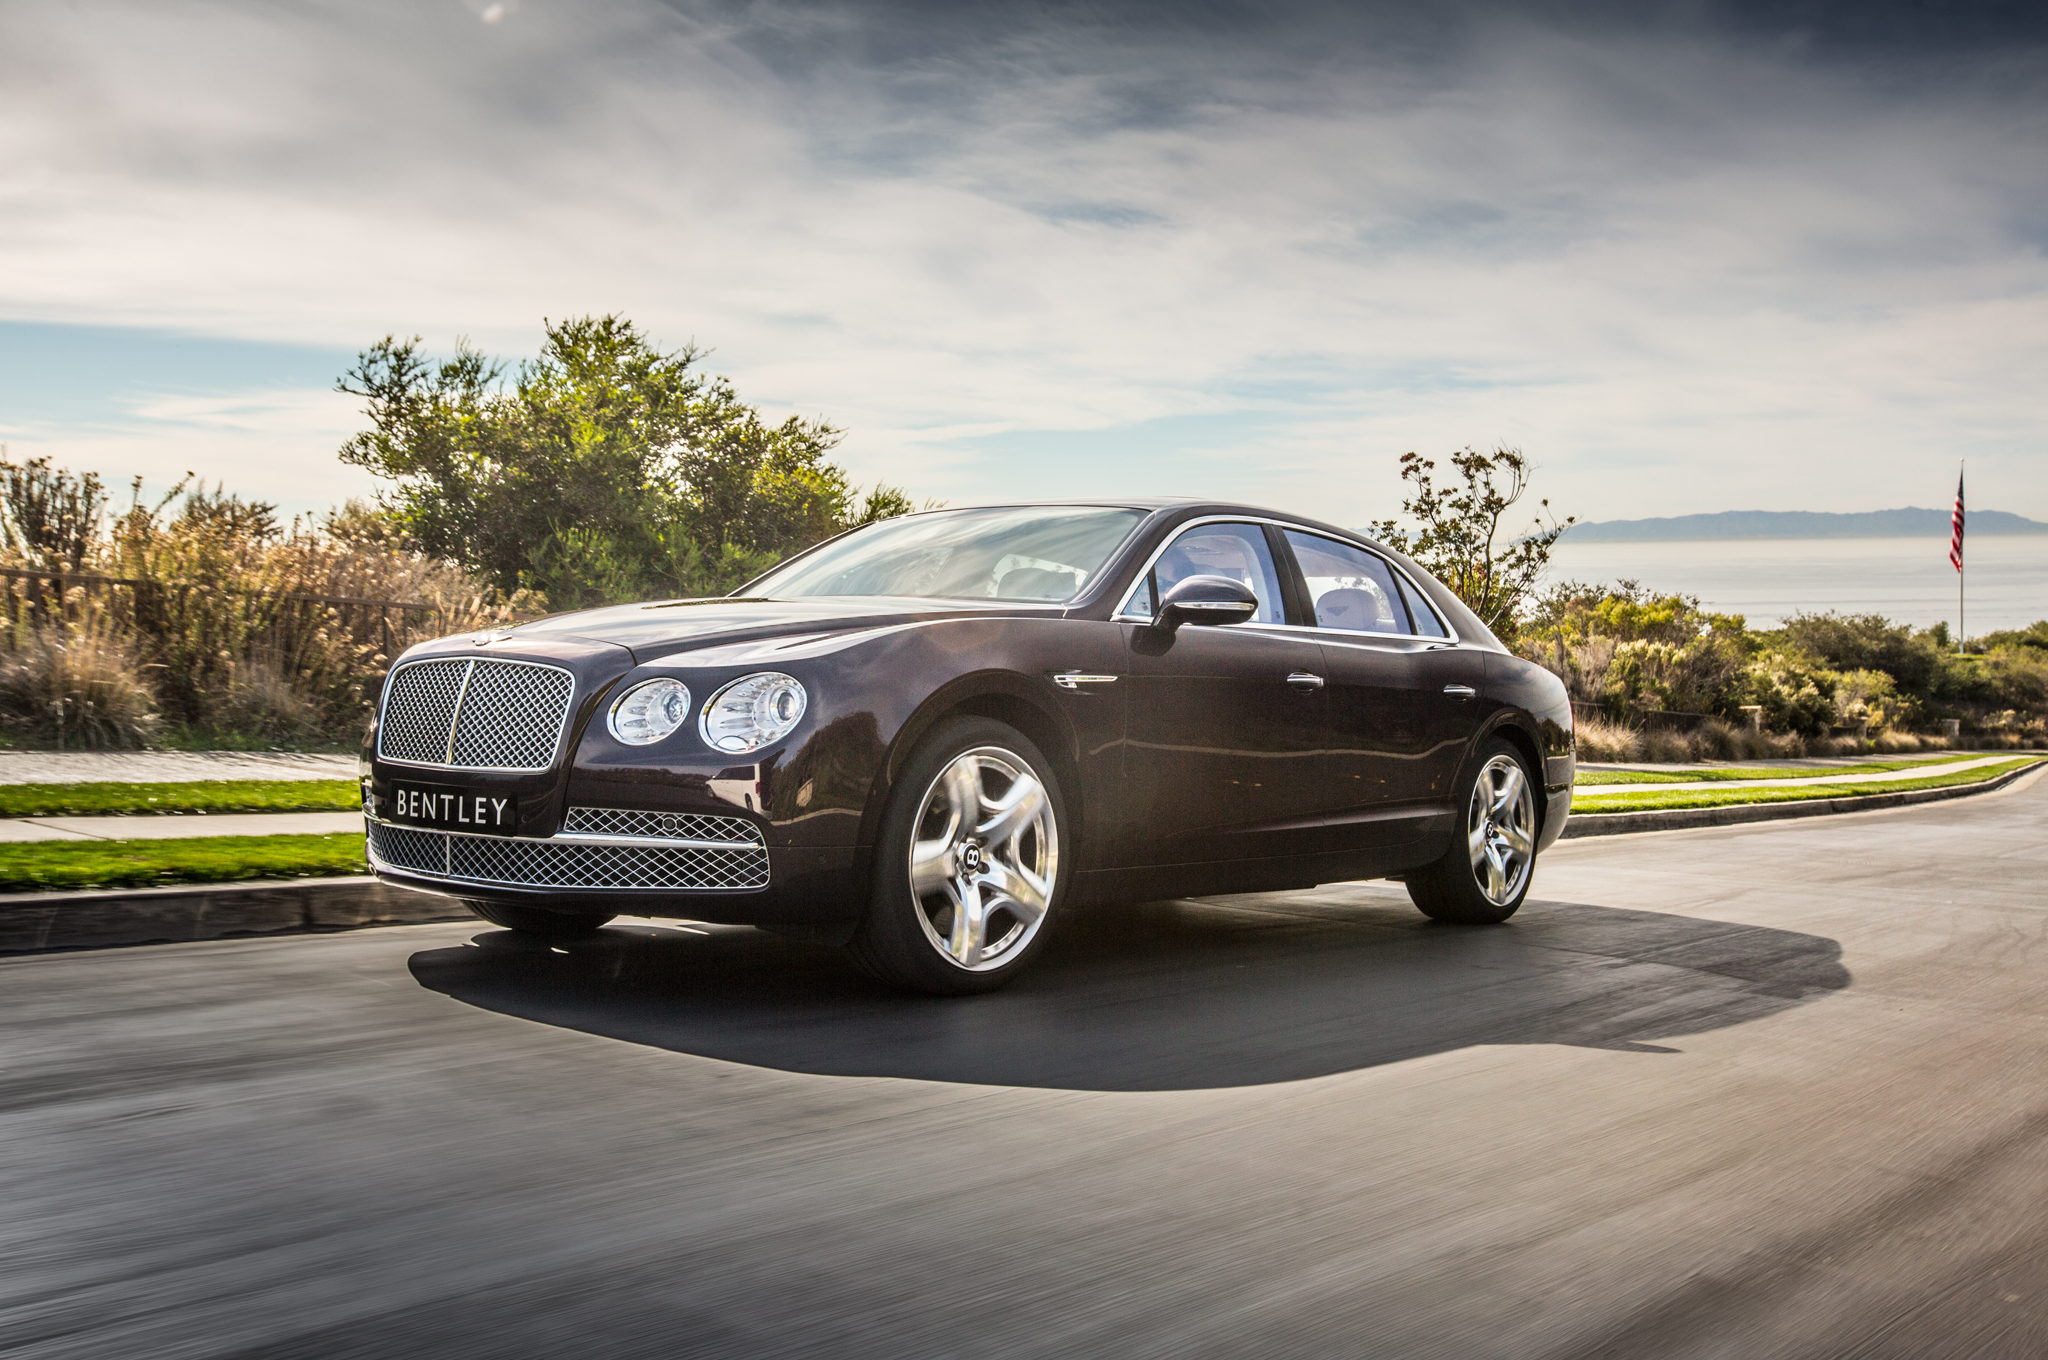 flying Spur - Car Wallpapers in HD For The Iphone ,Android,Desktop,10